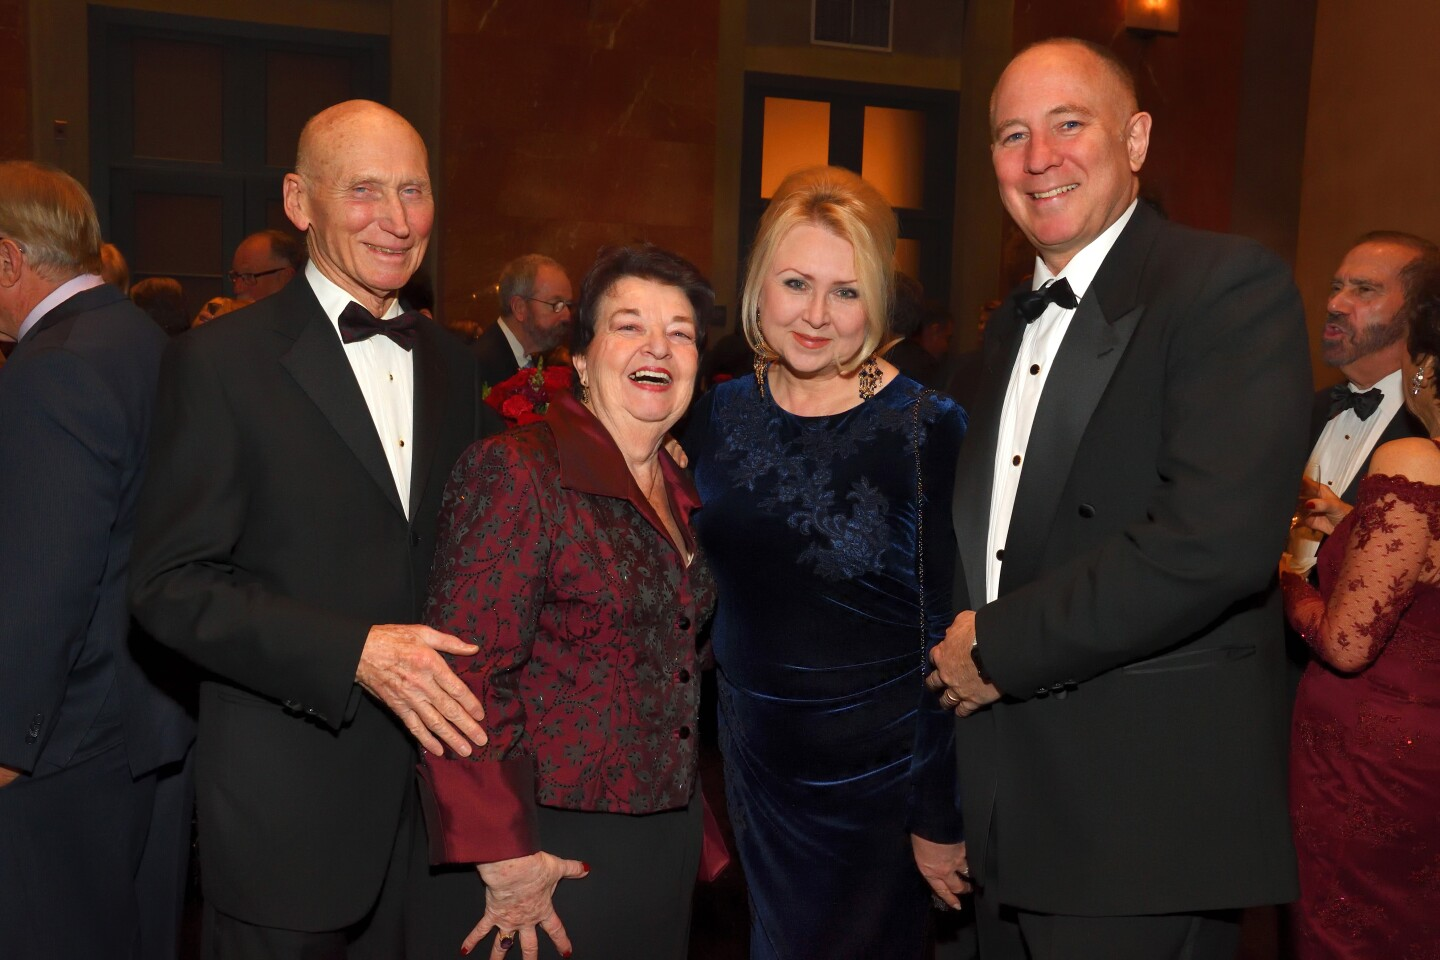 Paul Meschler and Alexandra Pearson, Svetlana and Matthew Weil (all are gala honorary chairs)